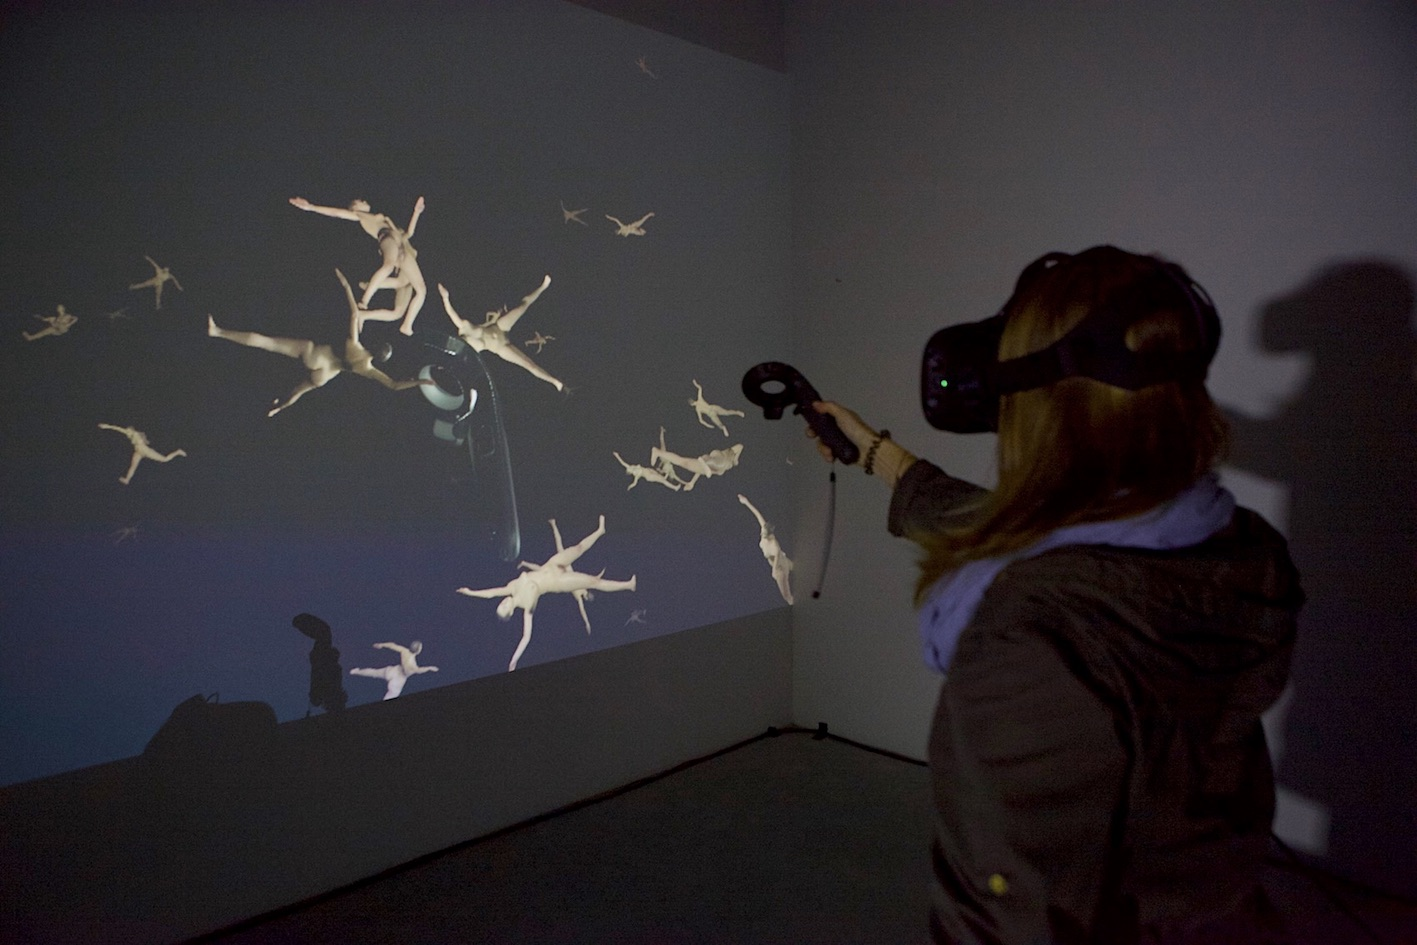 Exhibition view UNCANNY CONDITIONS, VR installation by Martina Menegon, plug your nose and try to hum / photo by Andreas Brauner, Bluesbrother.de, 2017